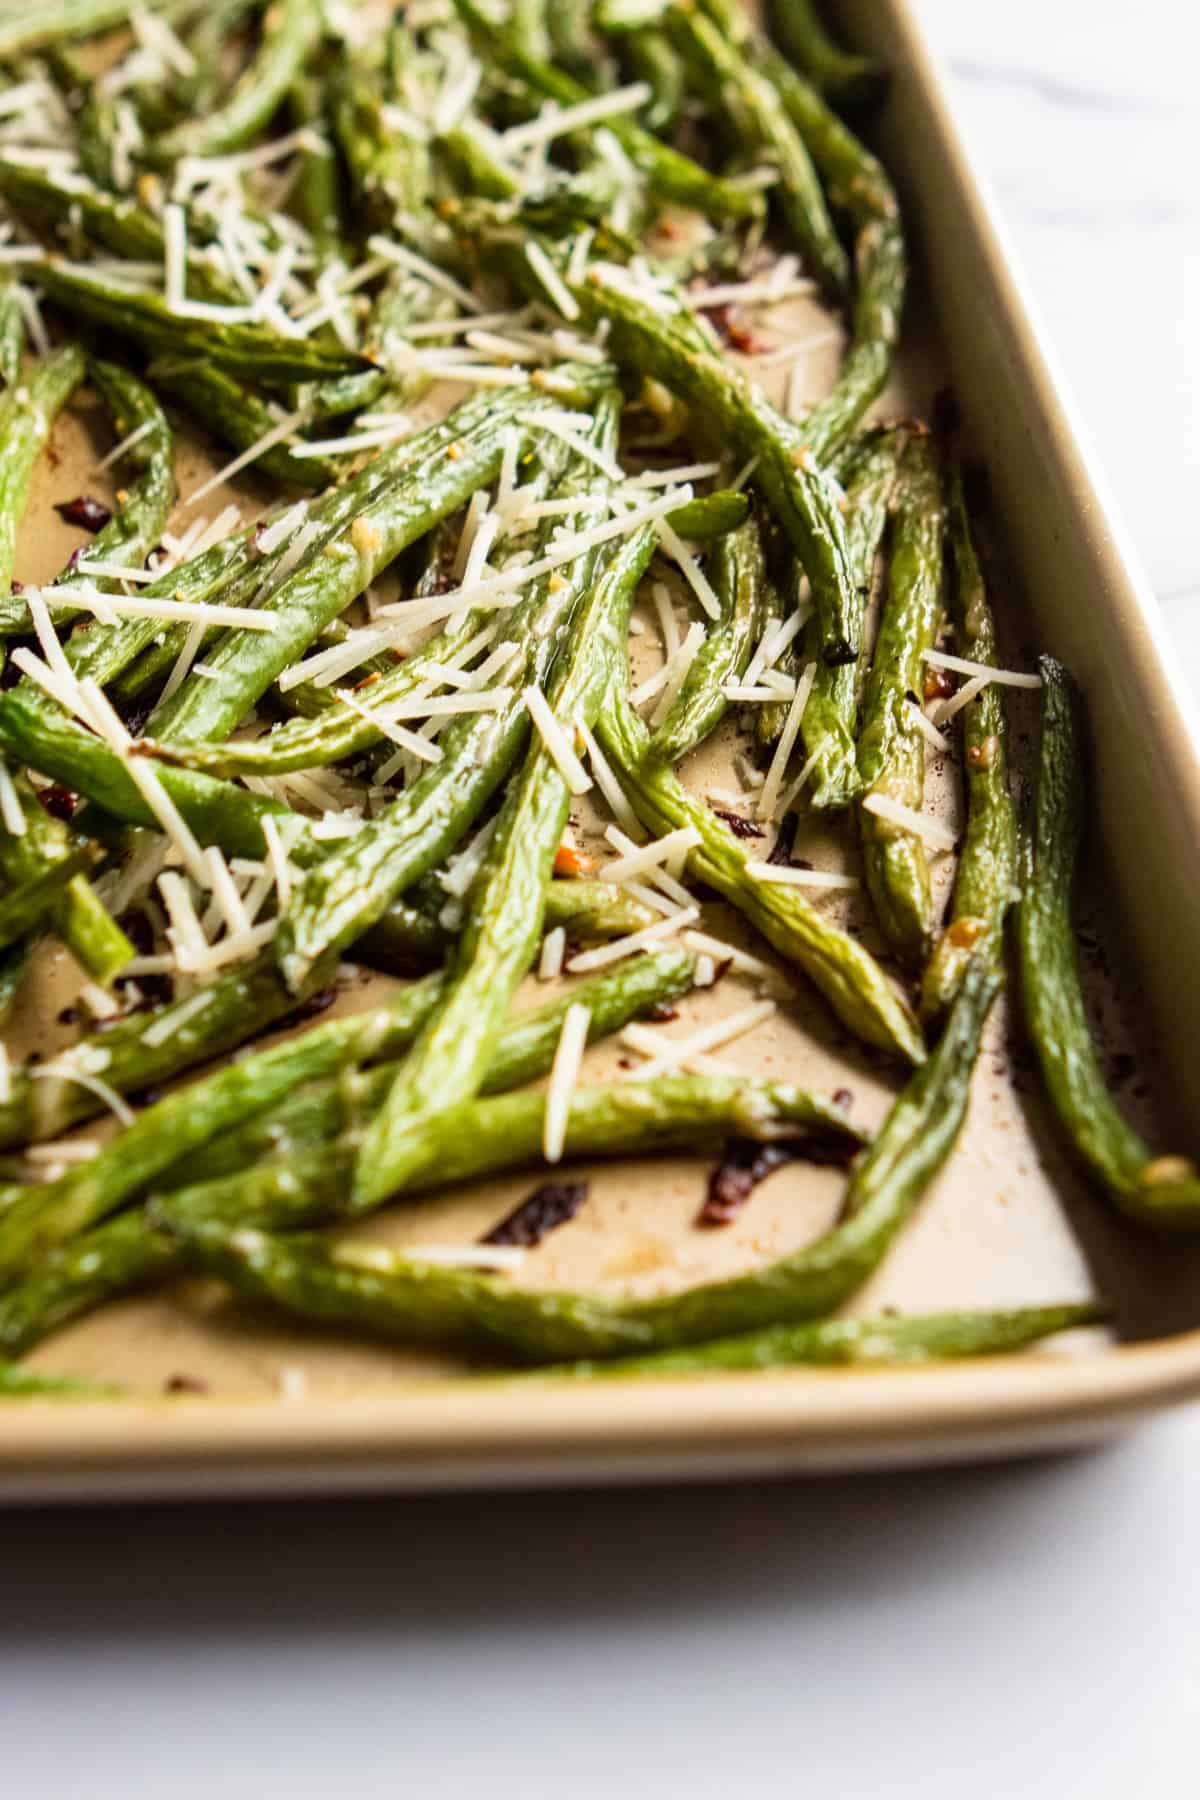 Baking sheet with roasted parmesan green beans.